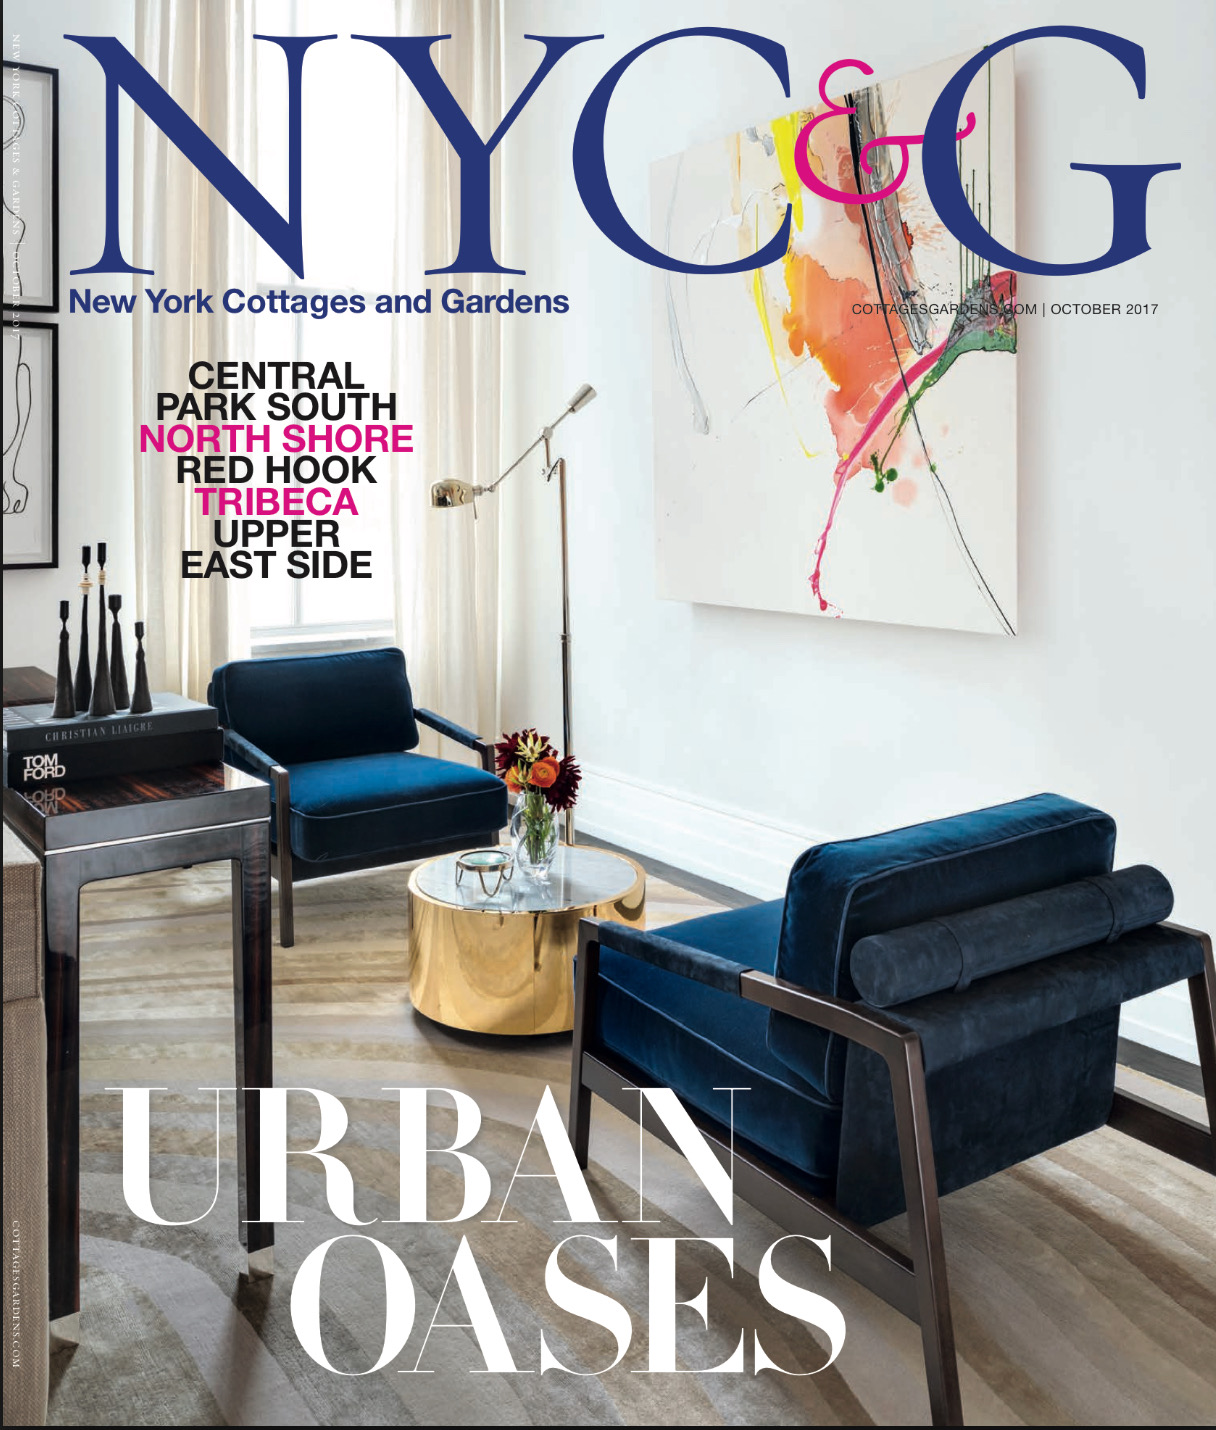 New York Cottages & Gardens Cover Story Oct 17